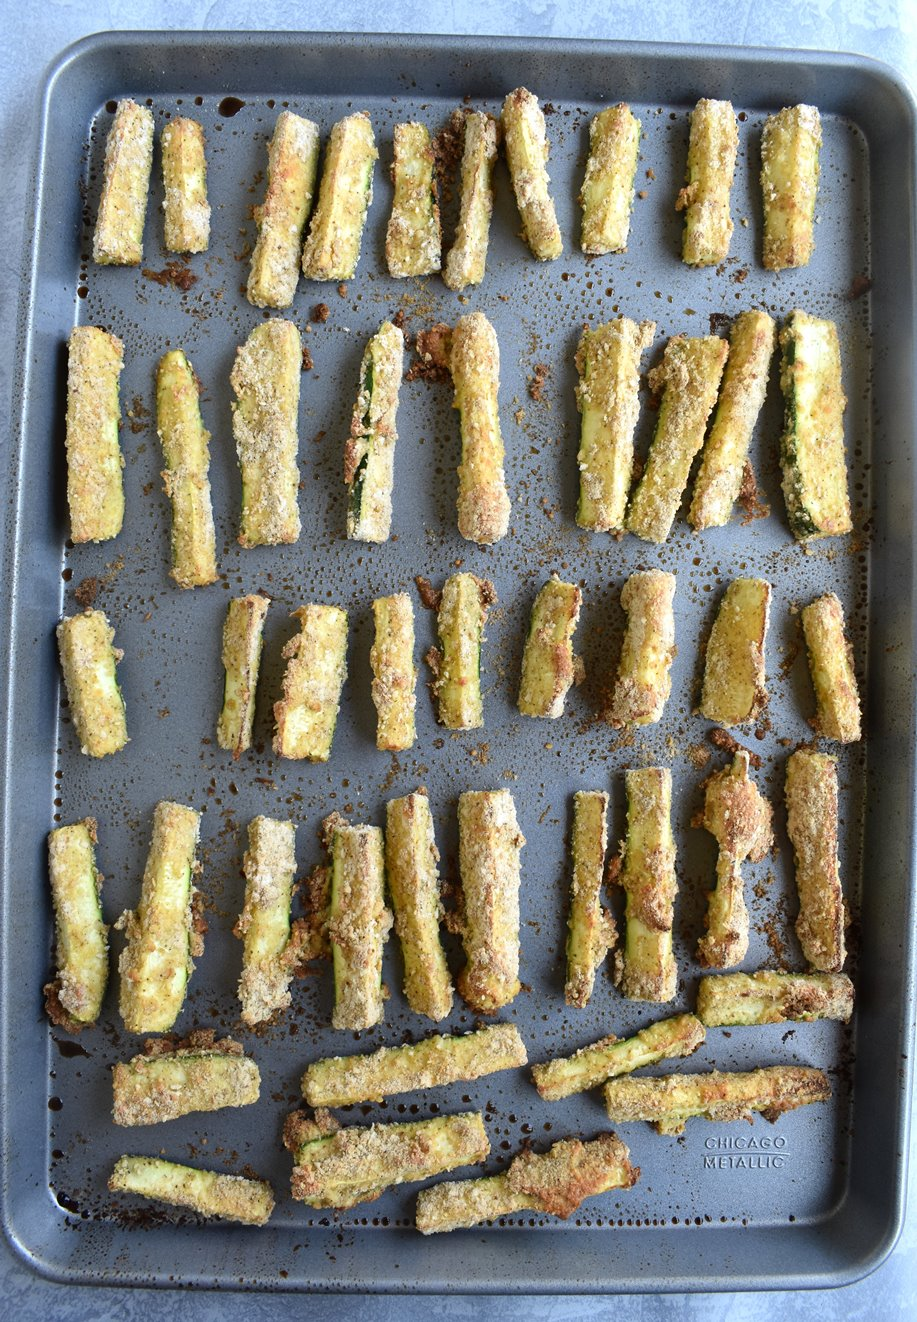 Breaded Zucchini Fries with Creamy Dijon Dipping Sauce are baked and super crispy, coated in a Parmesan garlic breading that can be enjoyed as an appetizer or side dish! #zucchini #fries #appetizer #dijon #vegetarian #healthy #cleaneating